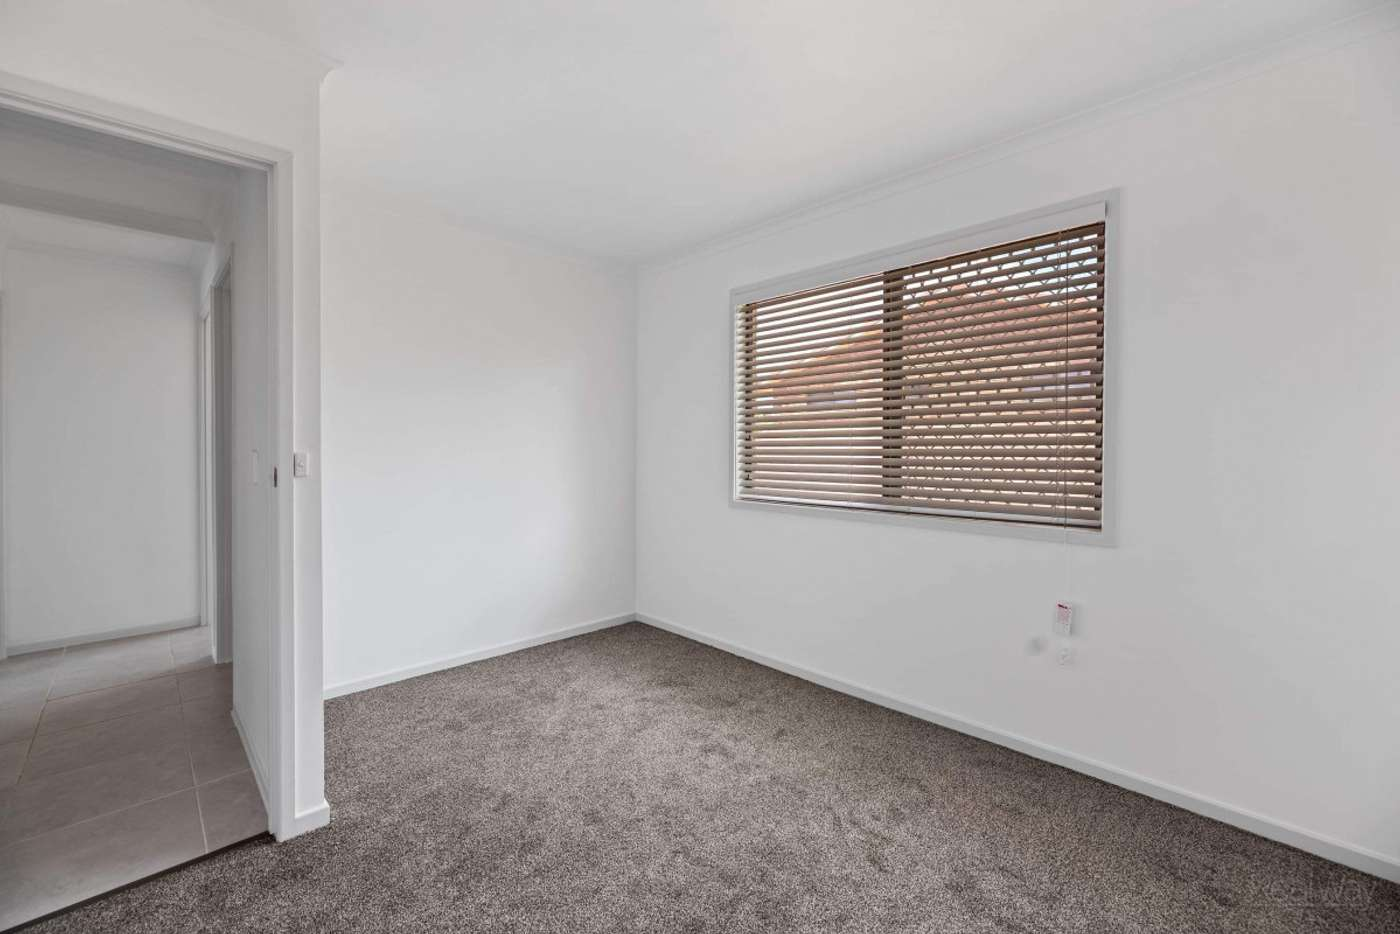 Sixth view of Homely unit listing, 2/329A Alderley Street, South Toowoomba QLD 4350